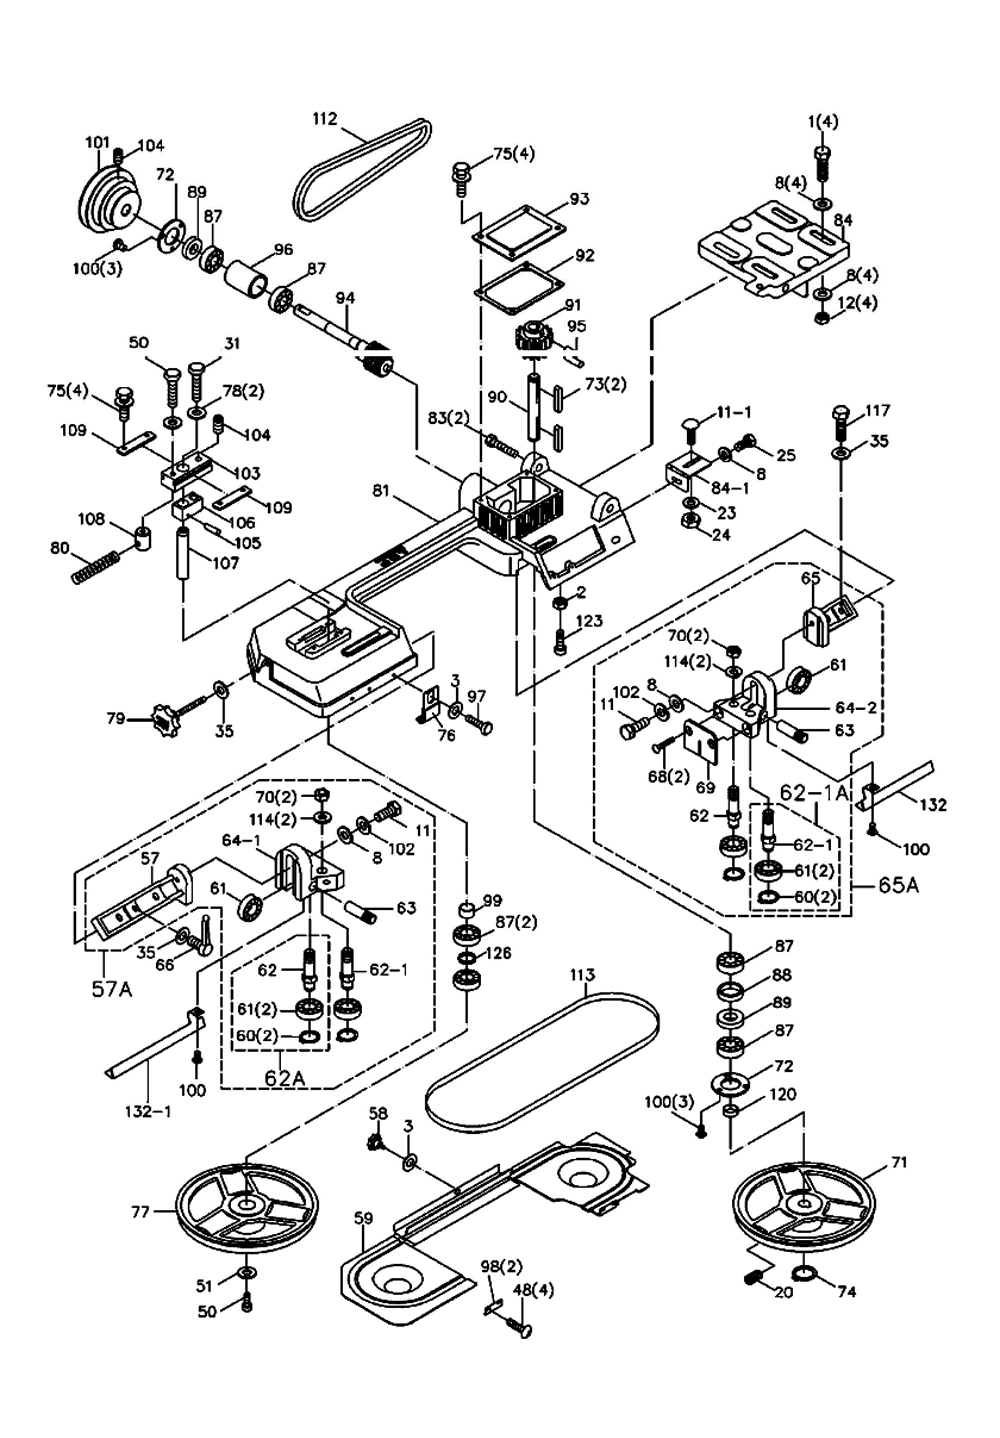 Jet 414458 Parts List Repair Oem With Band Saw Wiring Diagram Schematic